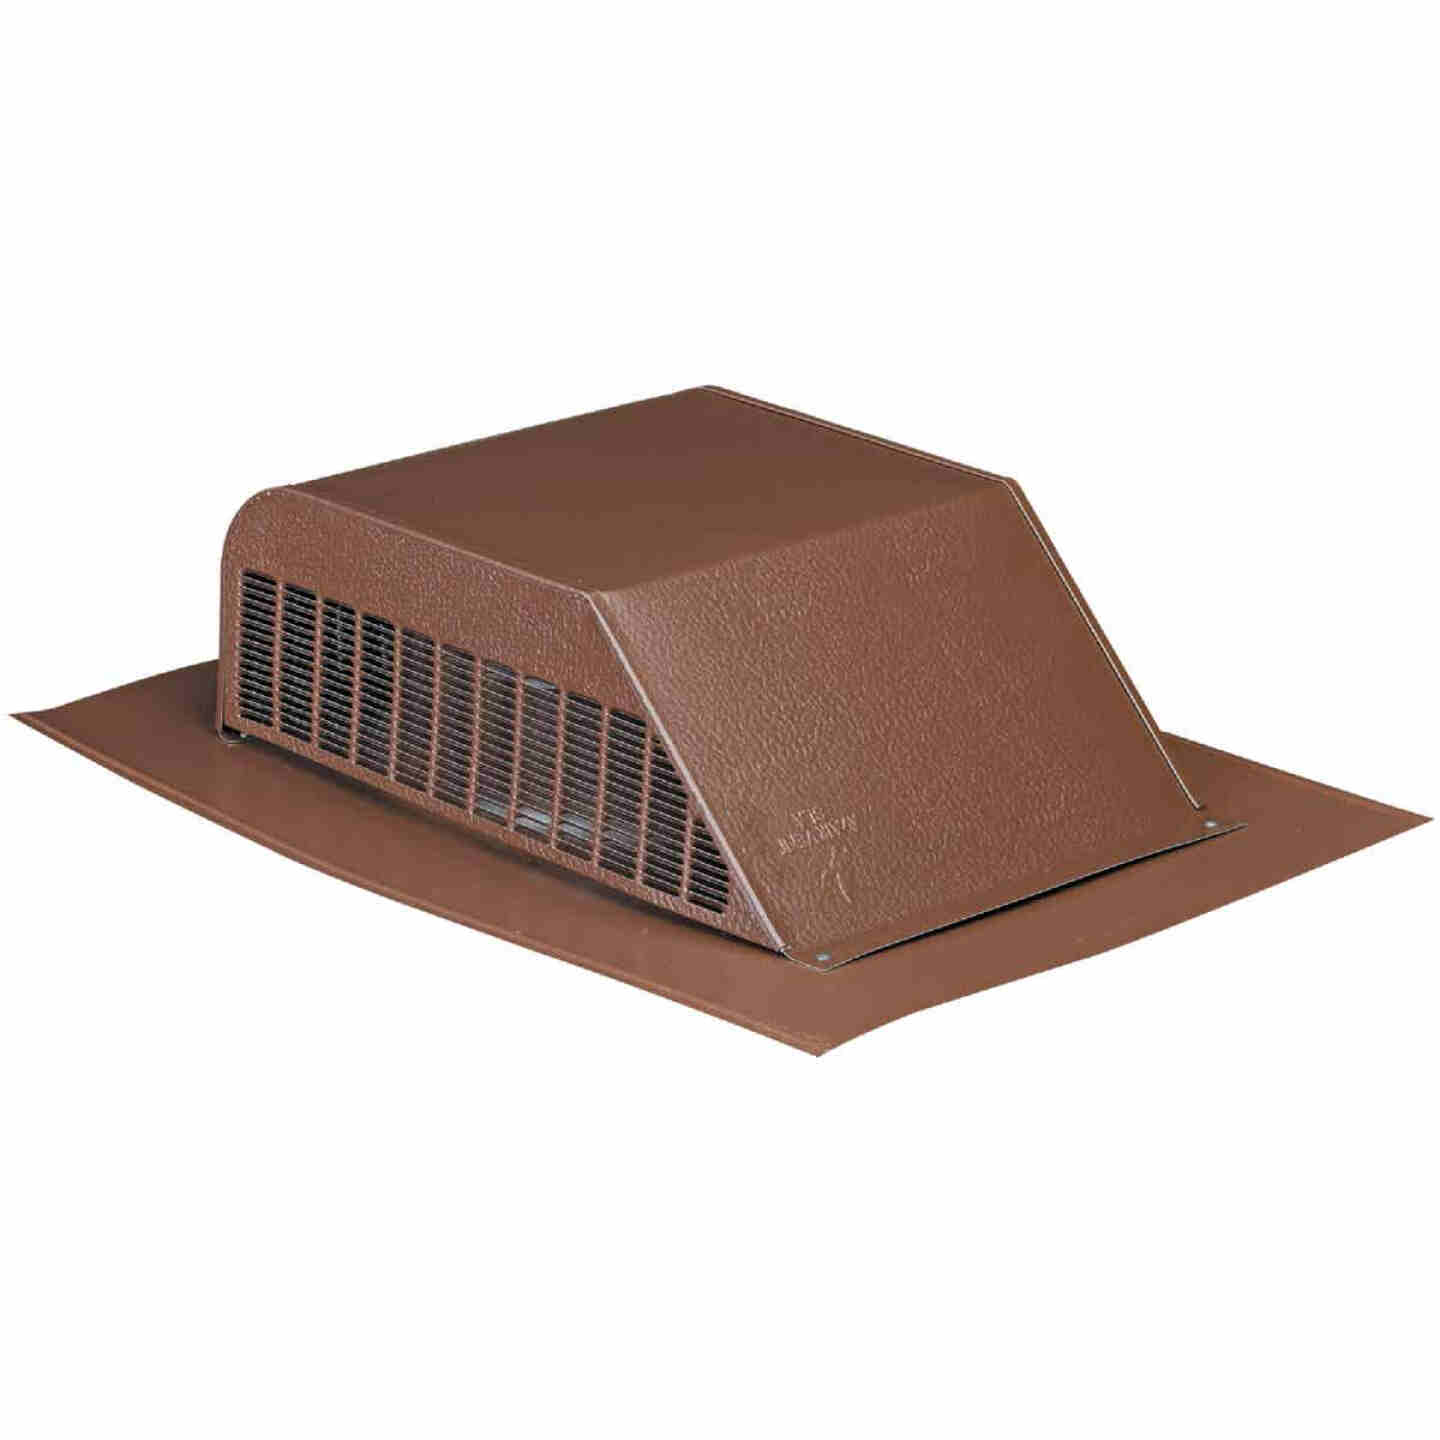 Airhawk 50 In. Brown Galvanized Steel Slant Back Roof Vent Image 1